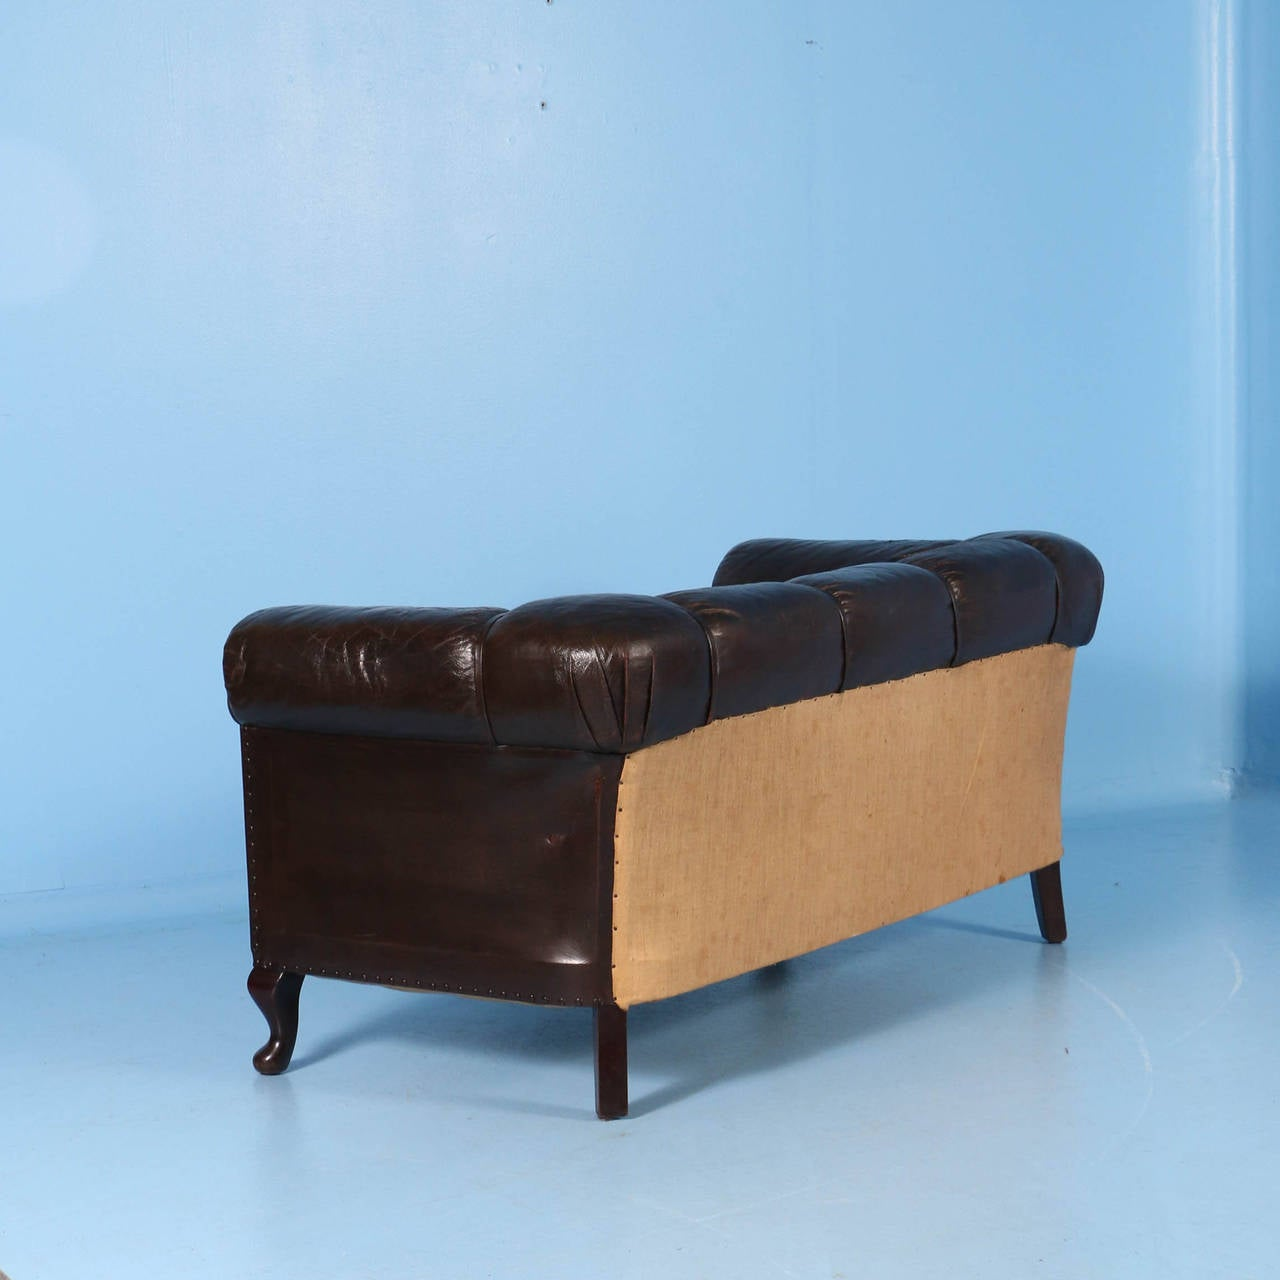 Blue leather chesterfield sofa at 1stdibs - Small Vintage Chesterfield Sofa England Circa 1920 1940 3